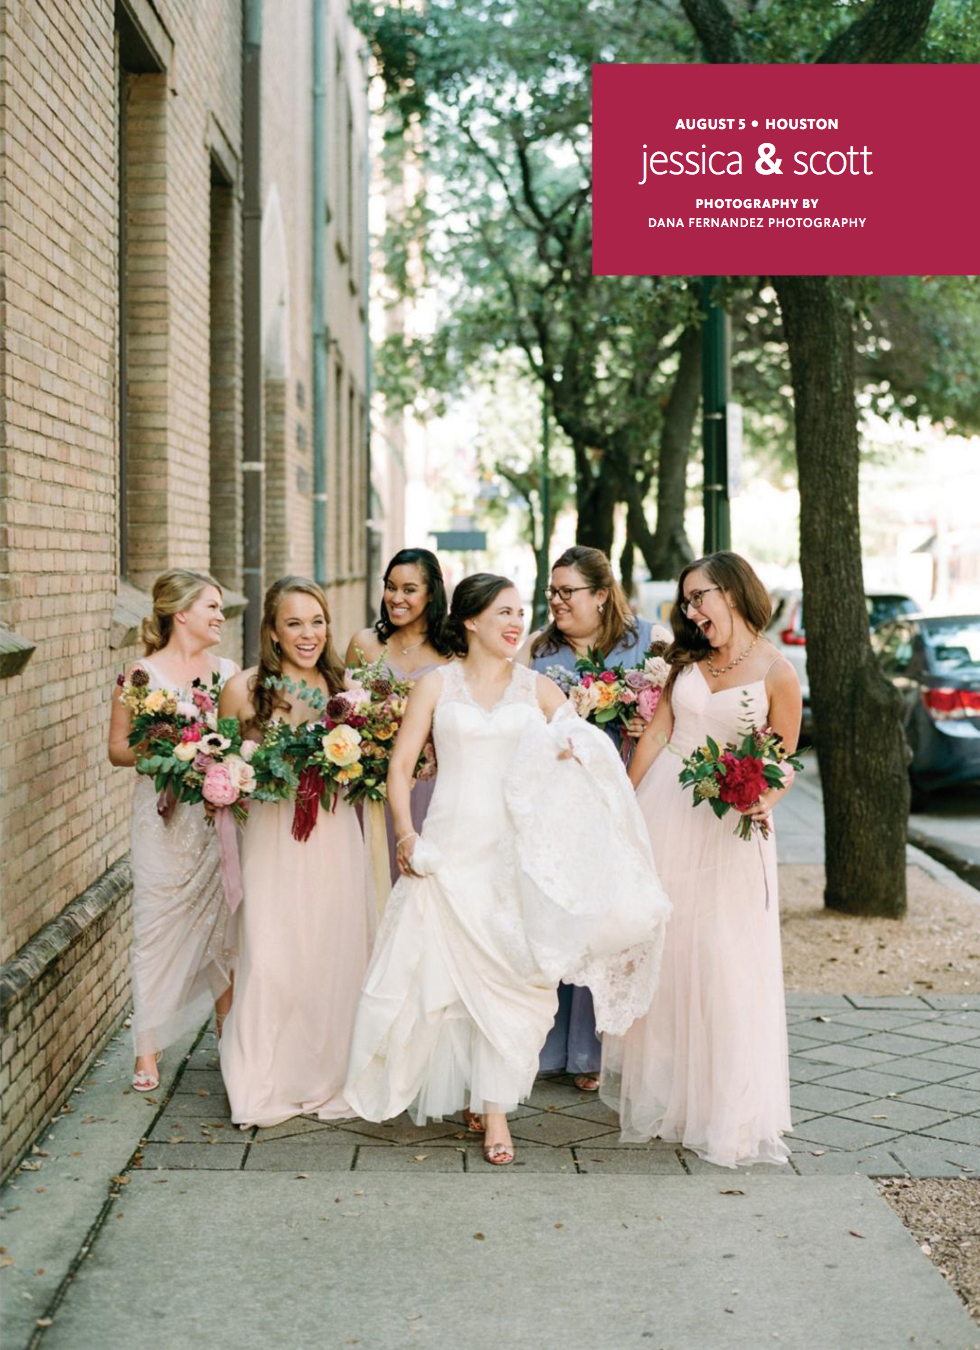 The-Knot-Texas-Fine-Art-Wedding-Film-Destination-Photographer-Houston-Austin-Dallas-New-Orleans-Julia-Ideson-Library-Event-Dana-Josh-Fernandez-Photograph-Top-Best-131.png